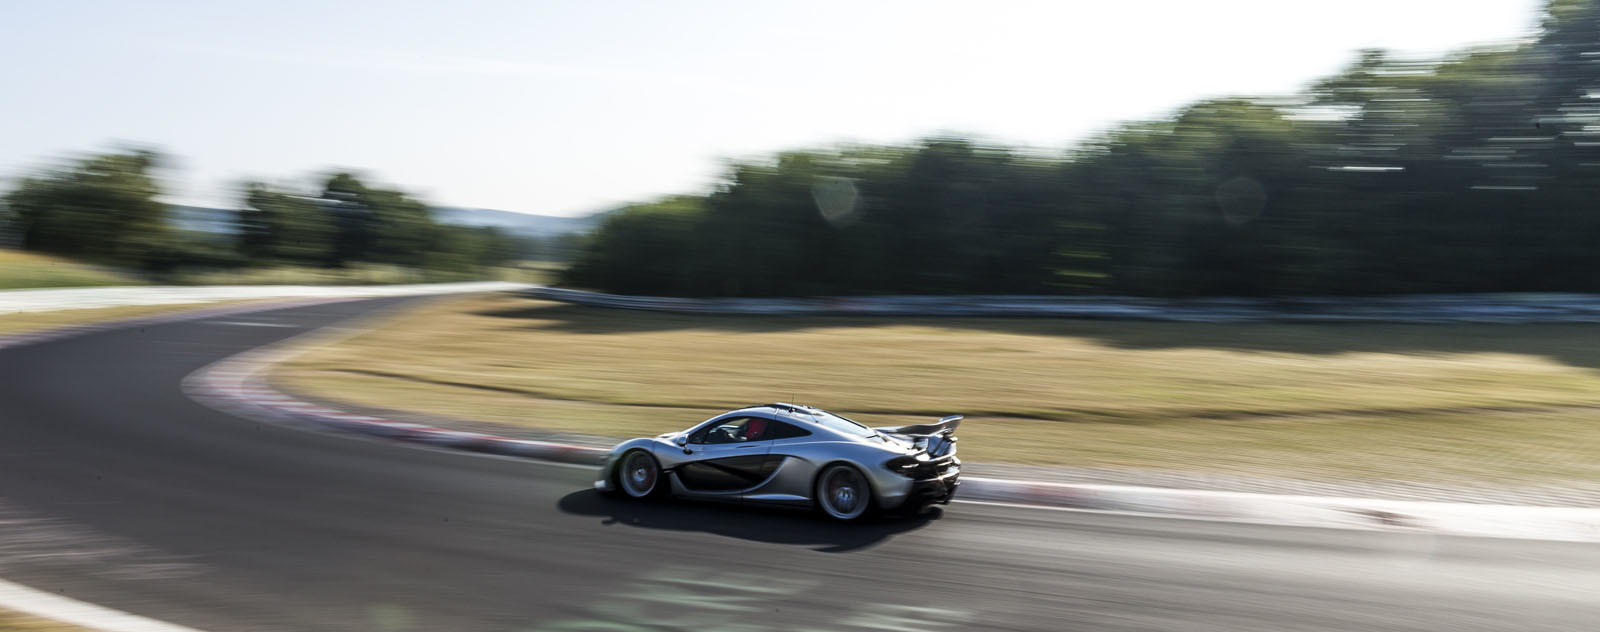 Default together with Luxurysupercar14 3 also 5 likewise Mclaren Mp4 12c Gt3 as well 2014 Infiniti Q50 China auto Power Girl. on mclaren p1